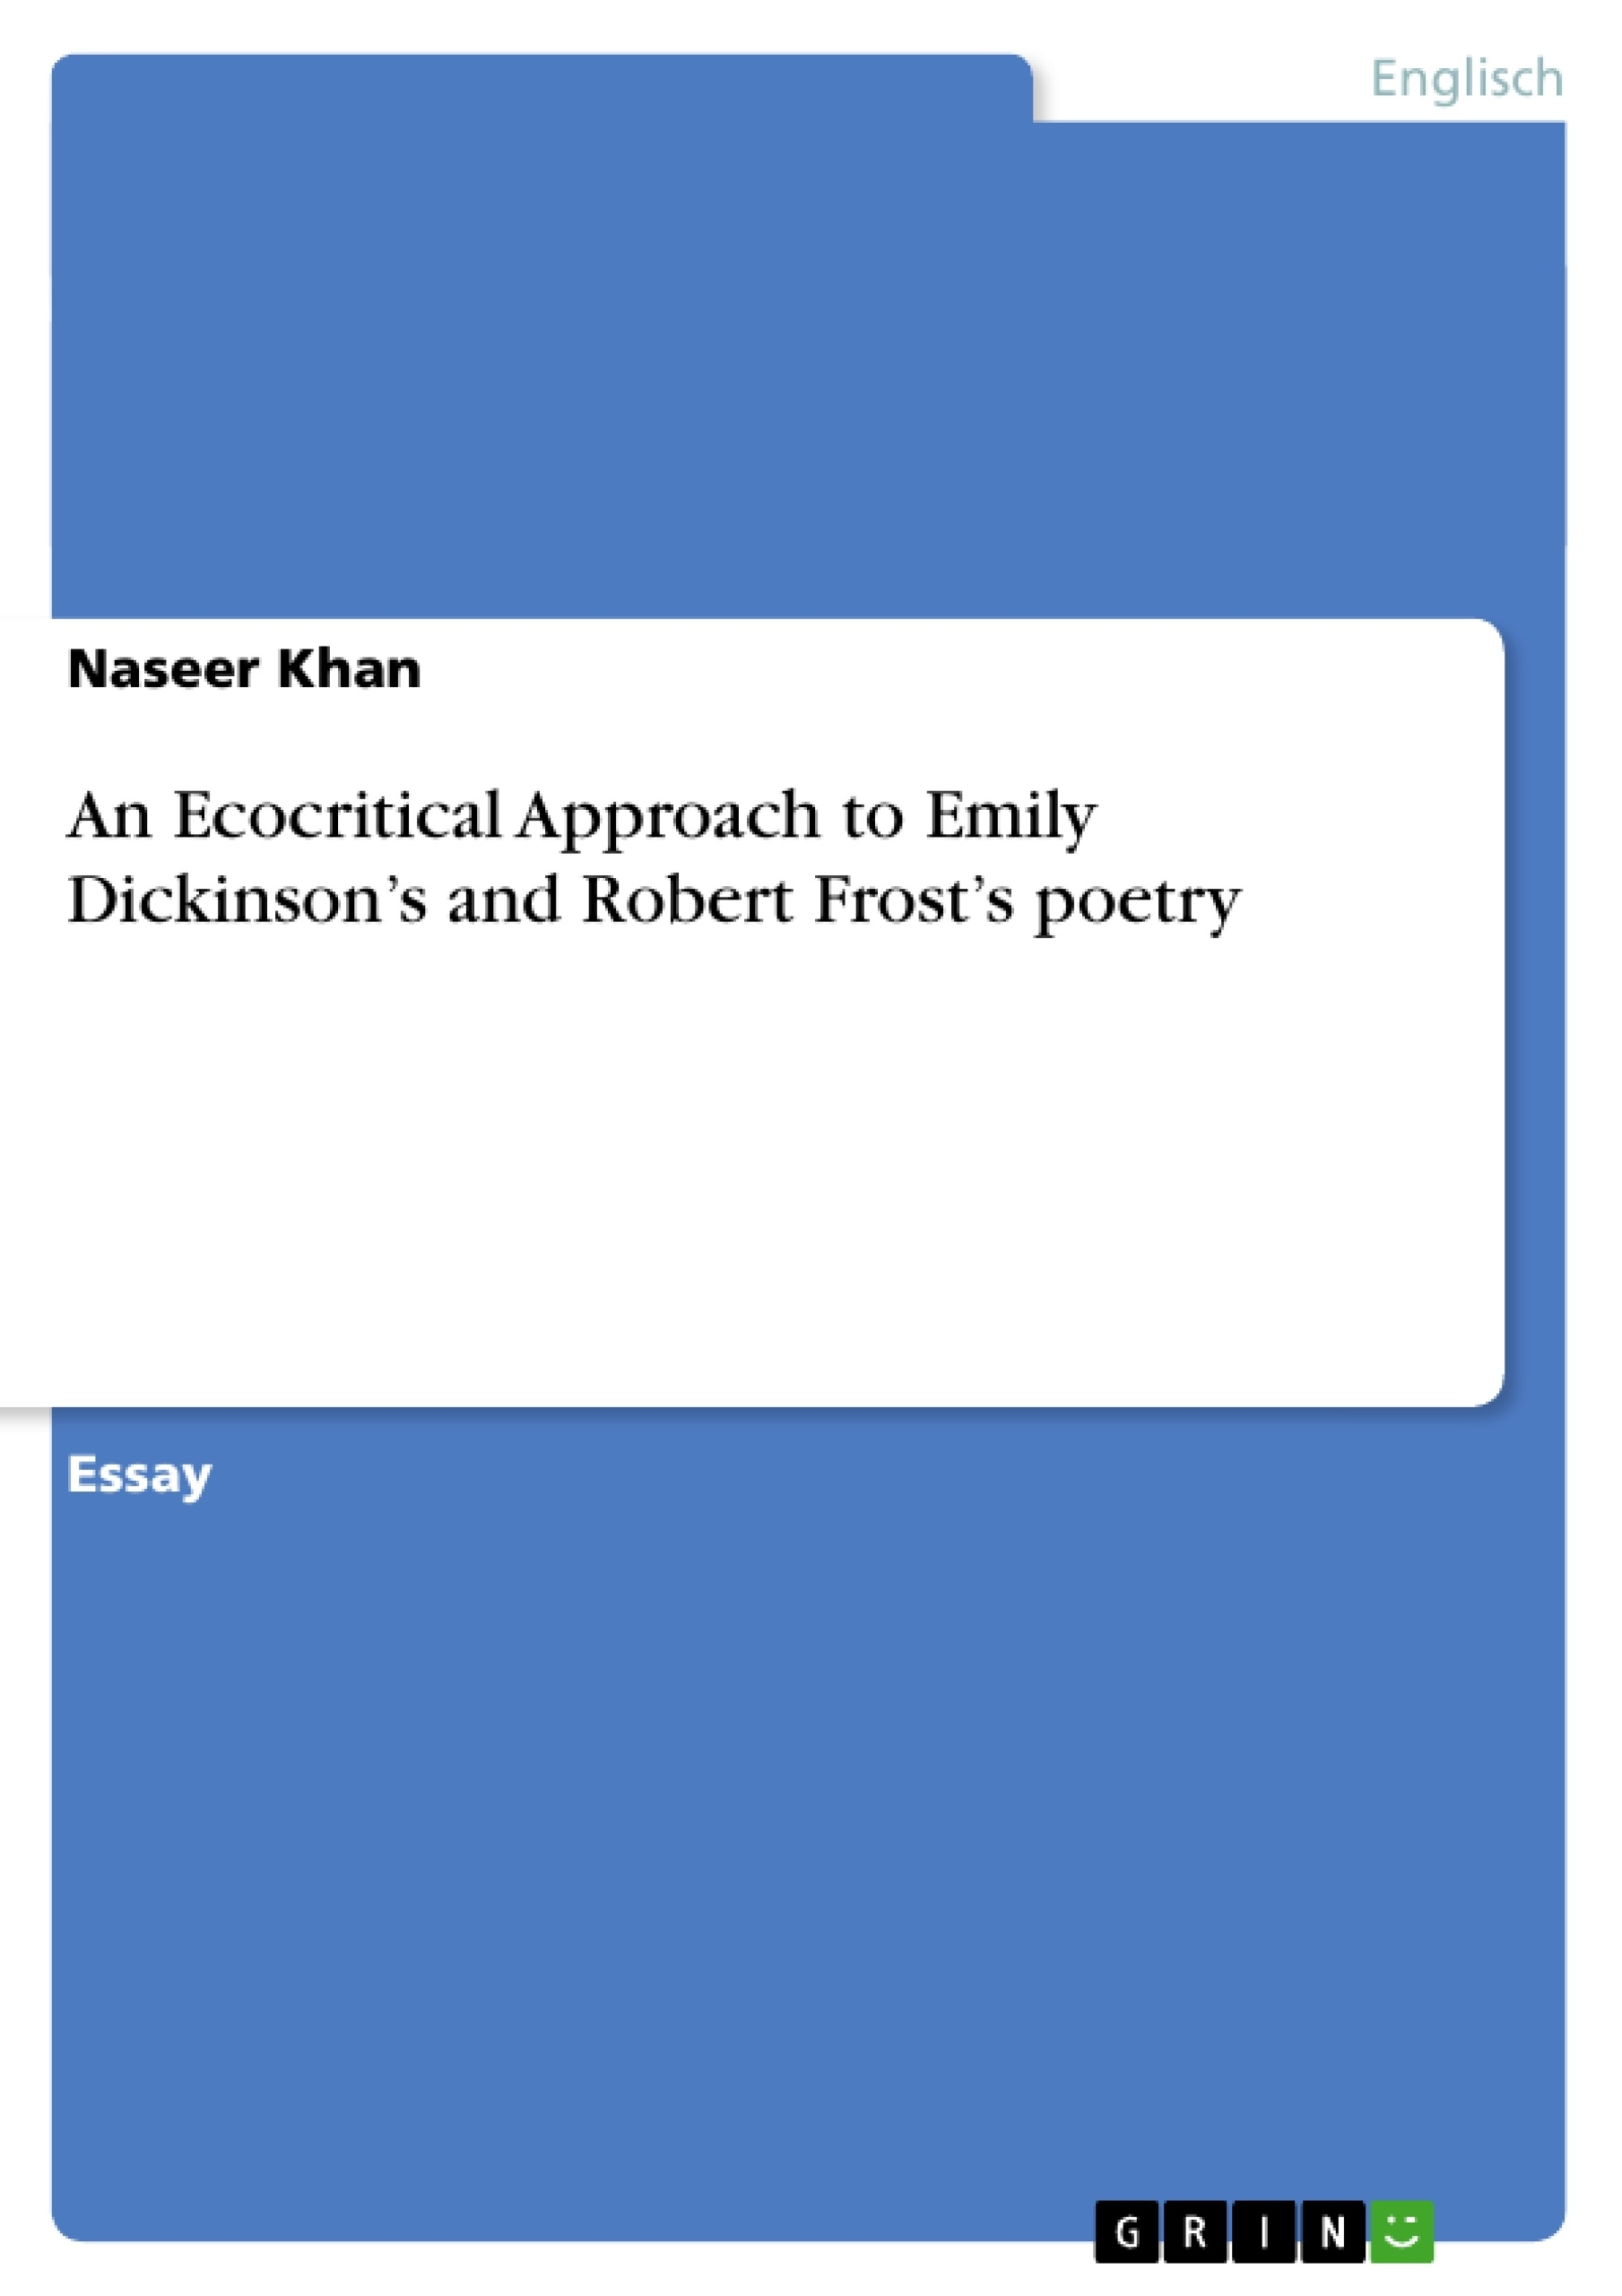 Titel: An Ecocritical Approach to Emily Dickinson's and Robert Frost's poetry